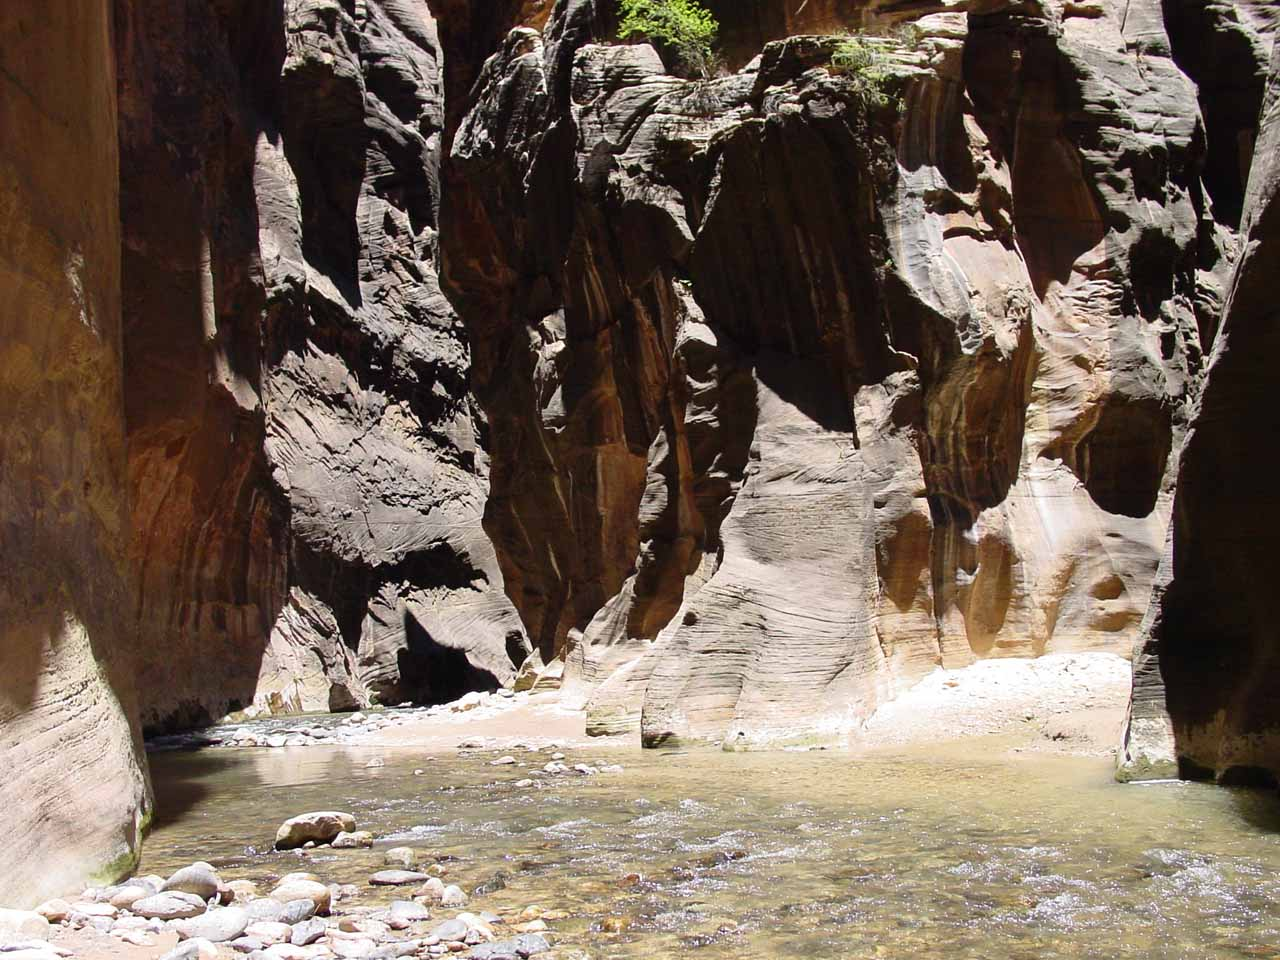 The familiar confluence with Orderville Canyon